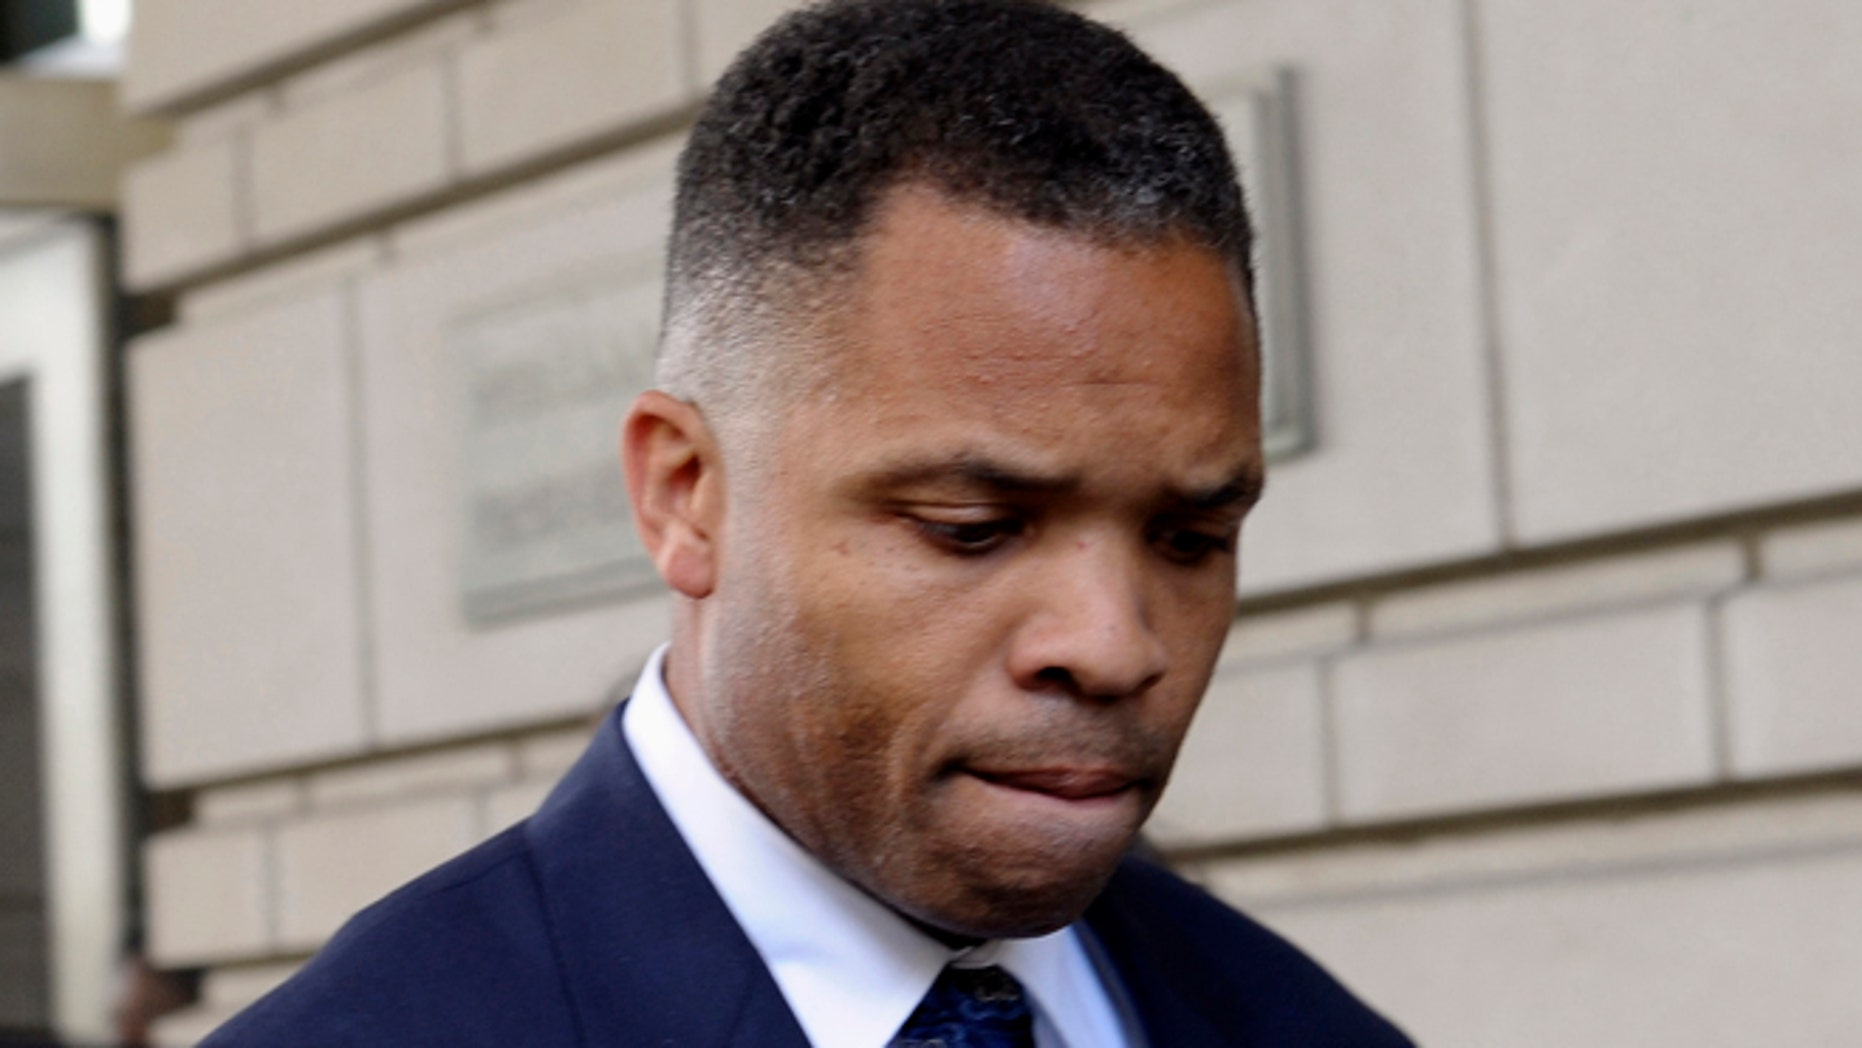 Aug. 14, 2013: Former Illinois Rep. Jesse Jackson Jr. leaves federal court in Washington after being sentenced to 2 1/2 years in prison for misusing $750,000 in campaign funds.